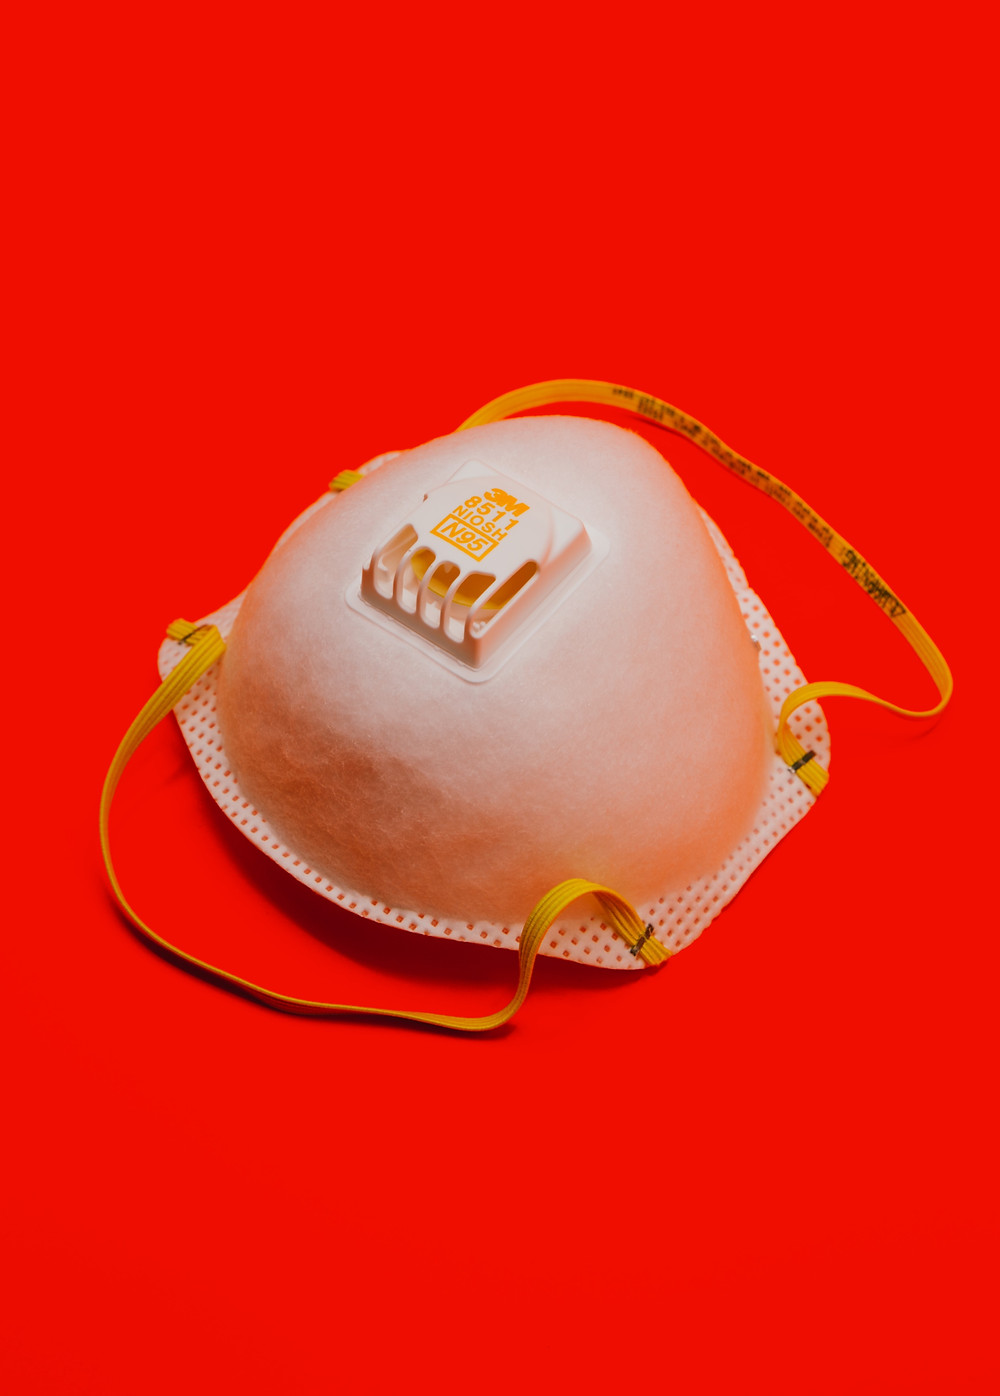 A single N-95 mask on a red background.